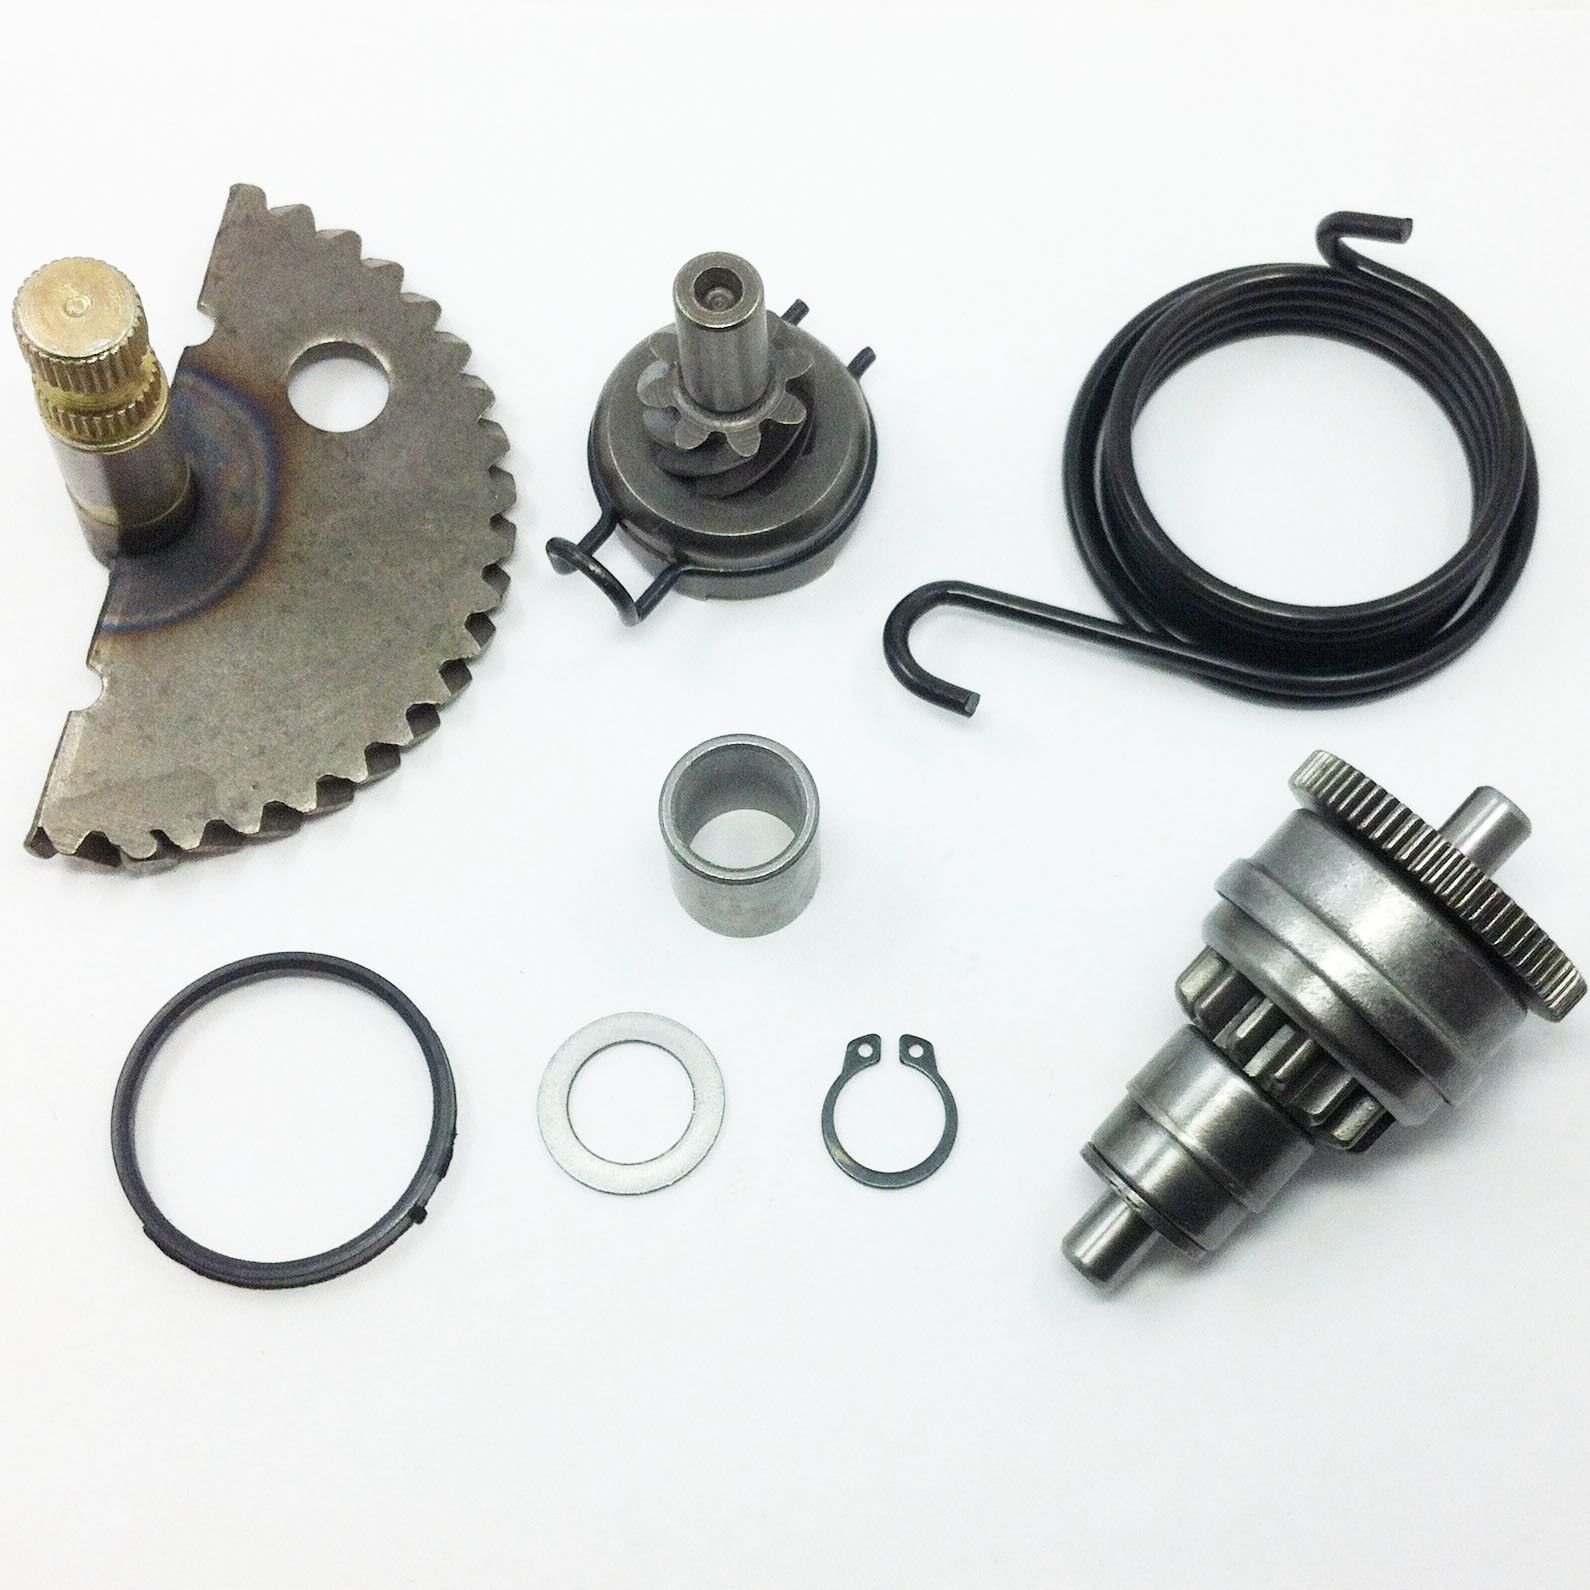 FLYPIG For GY6 49CC 50CC SCOOTER 139QMB P139QMB KICK START LEVER SHAFT GEAR IDLE GEAR